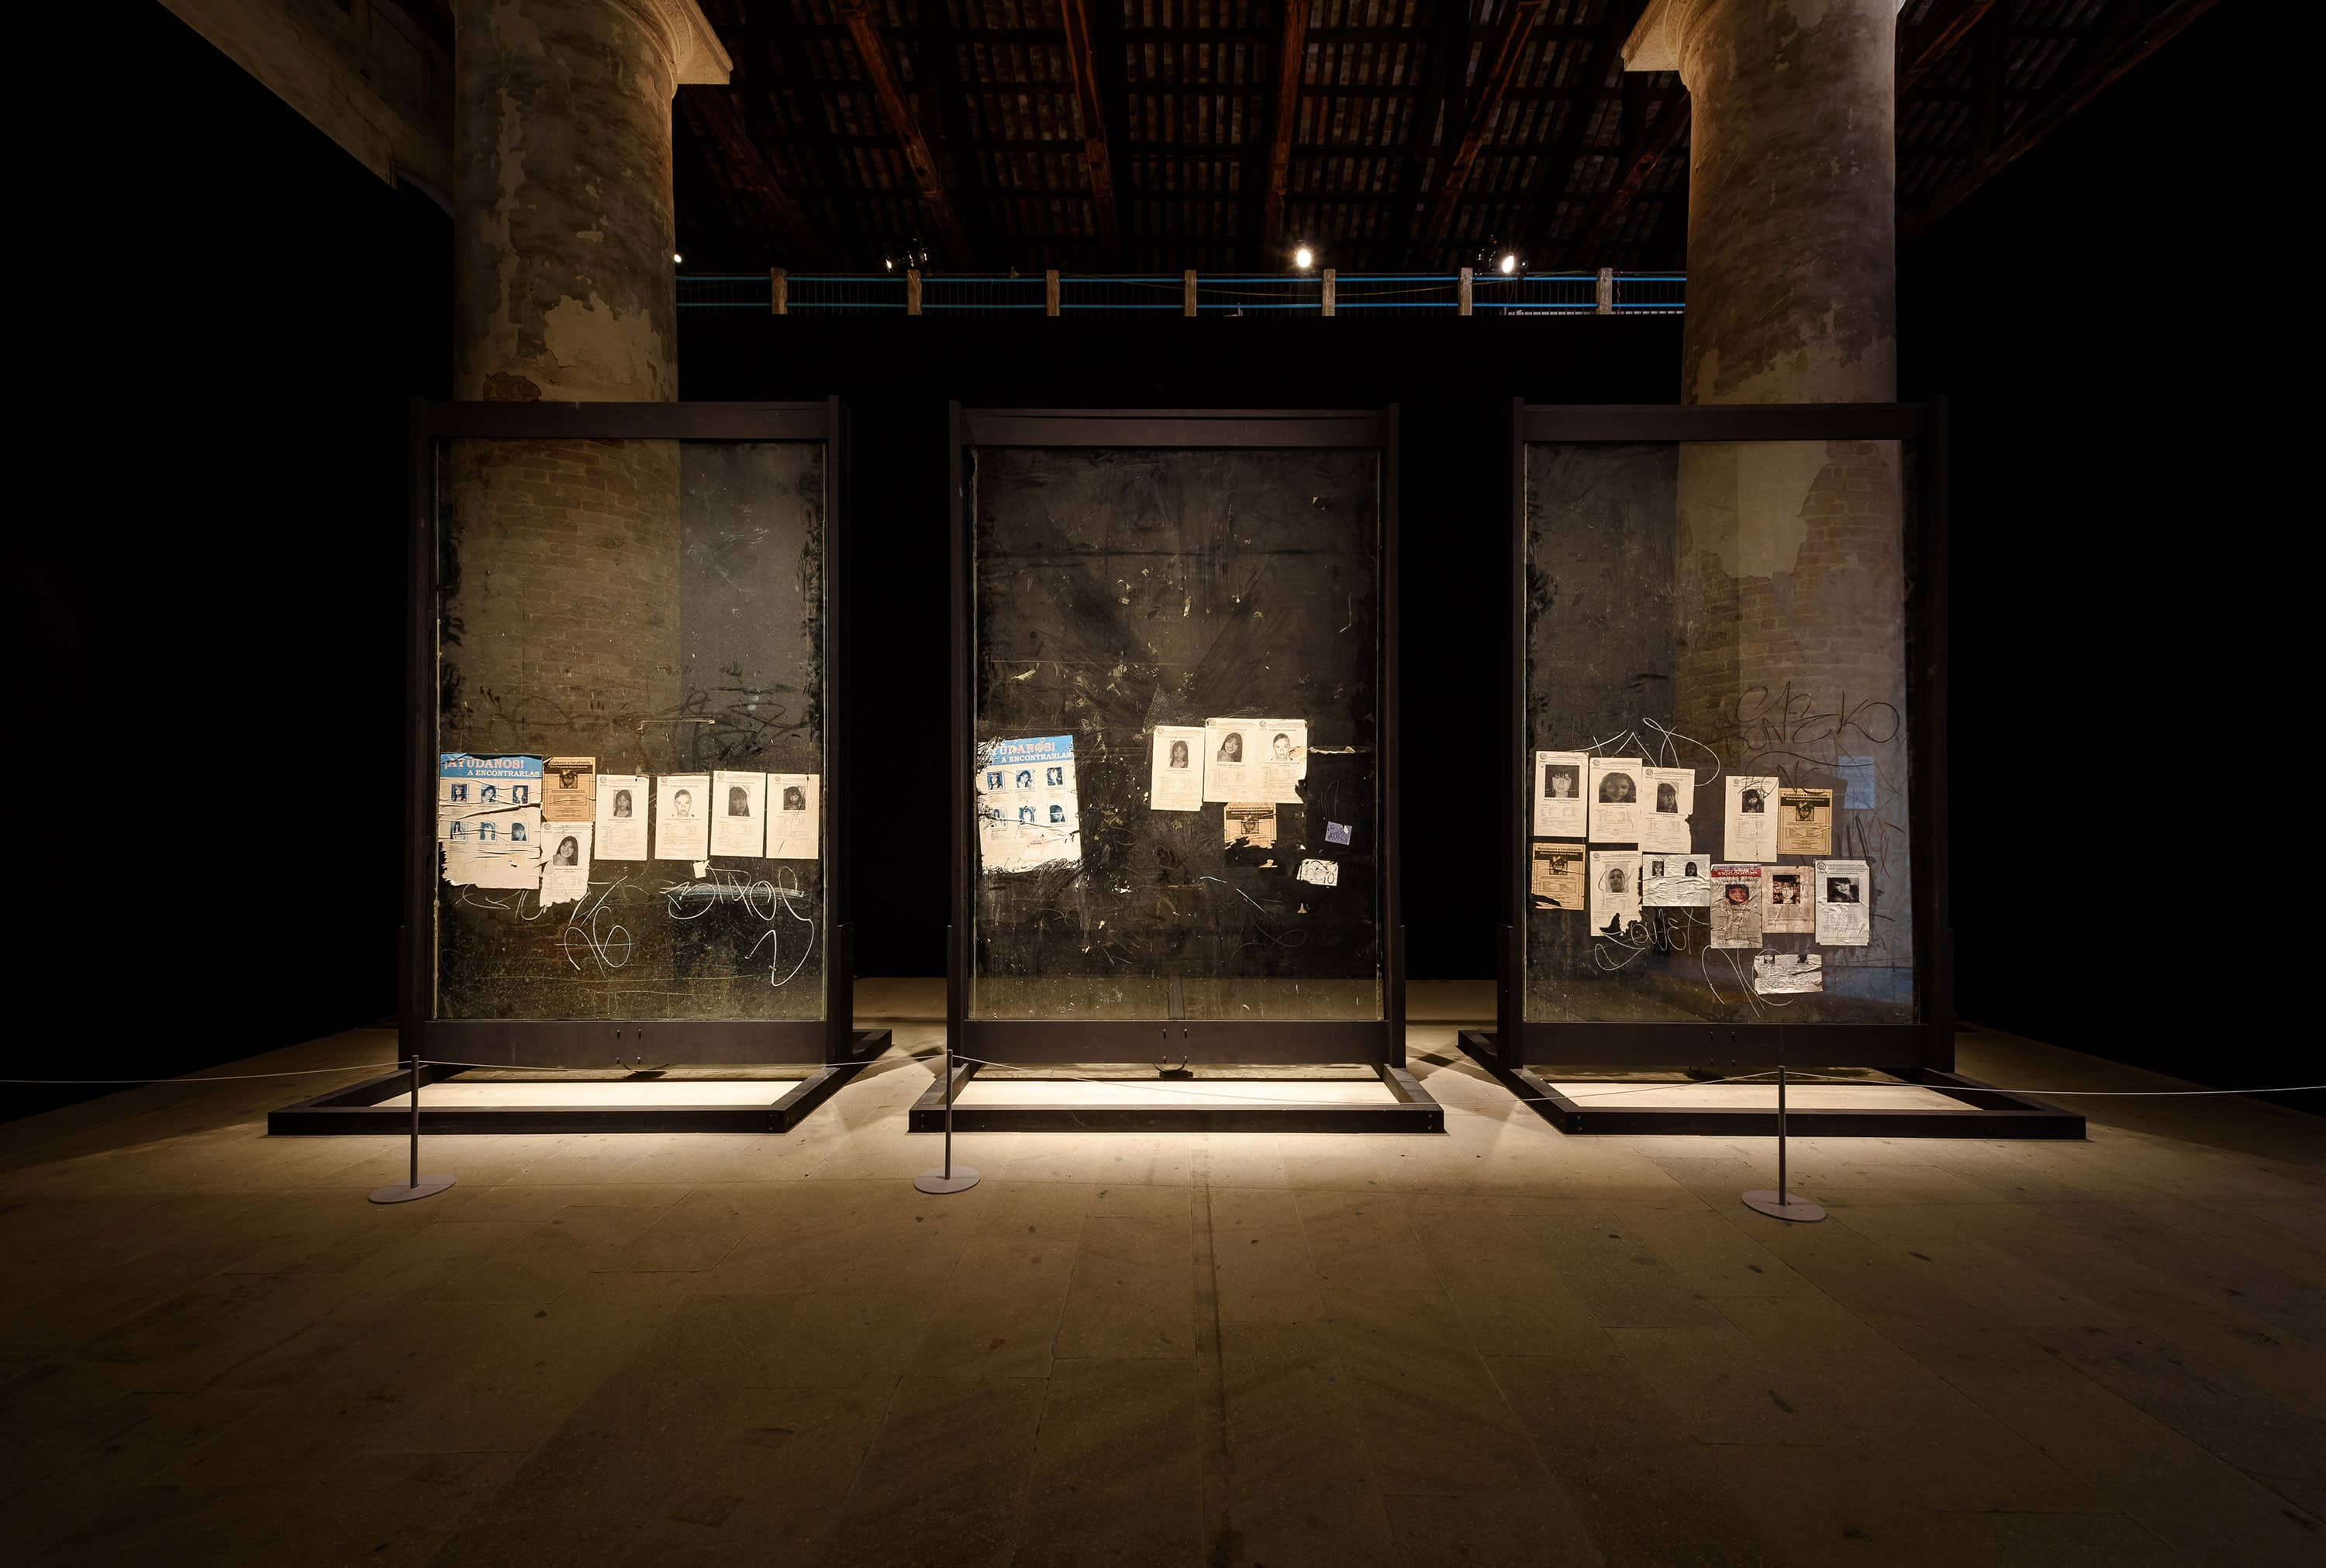 Teresa Margolles, La Búsqueda (2), 2014, Intervention with sound frequency on three glass panels, 58th International Art Exhibition - La Biennale di Venezia, May You Live In Interesting Times, photo by Andrea Avezzù, Courtesy: La Biennale di Venezia